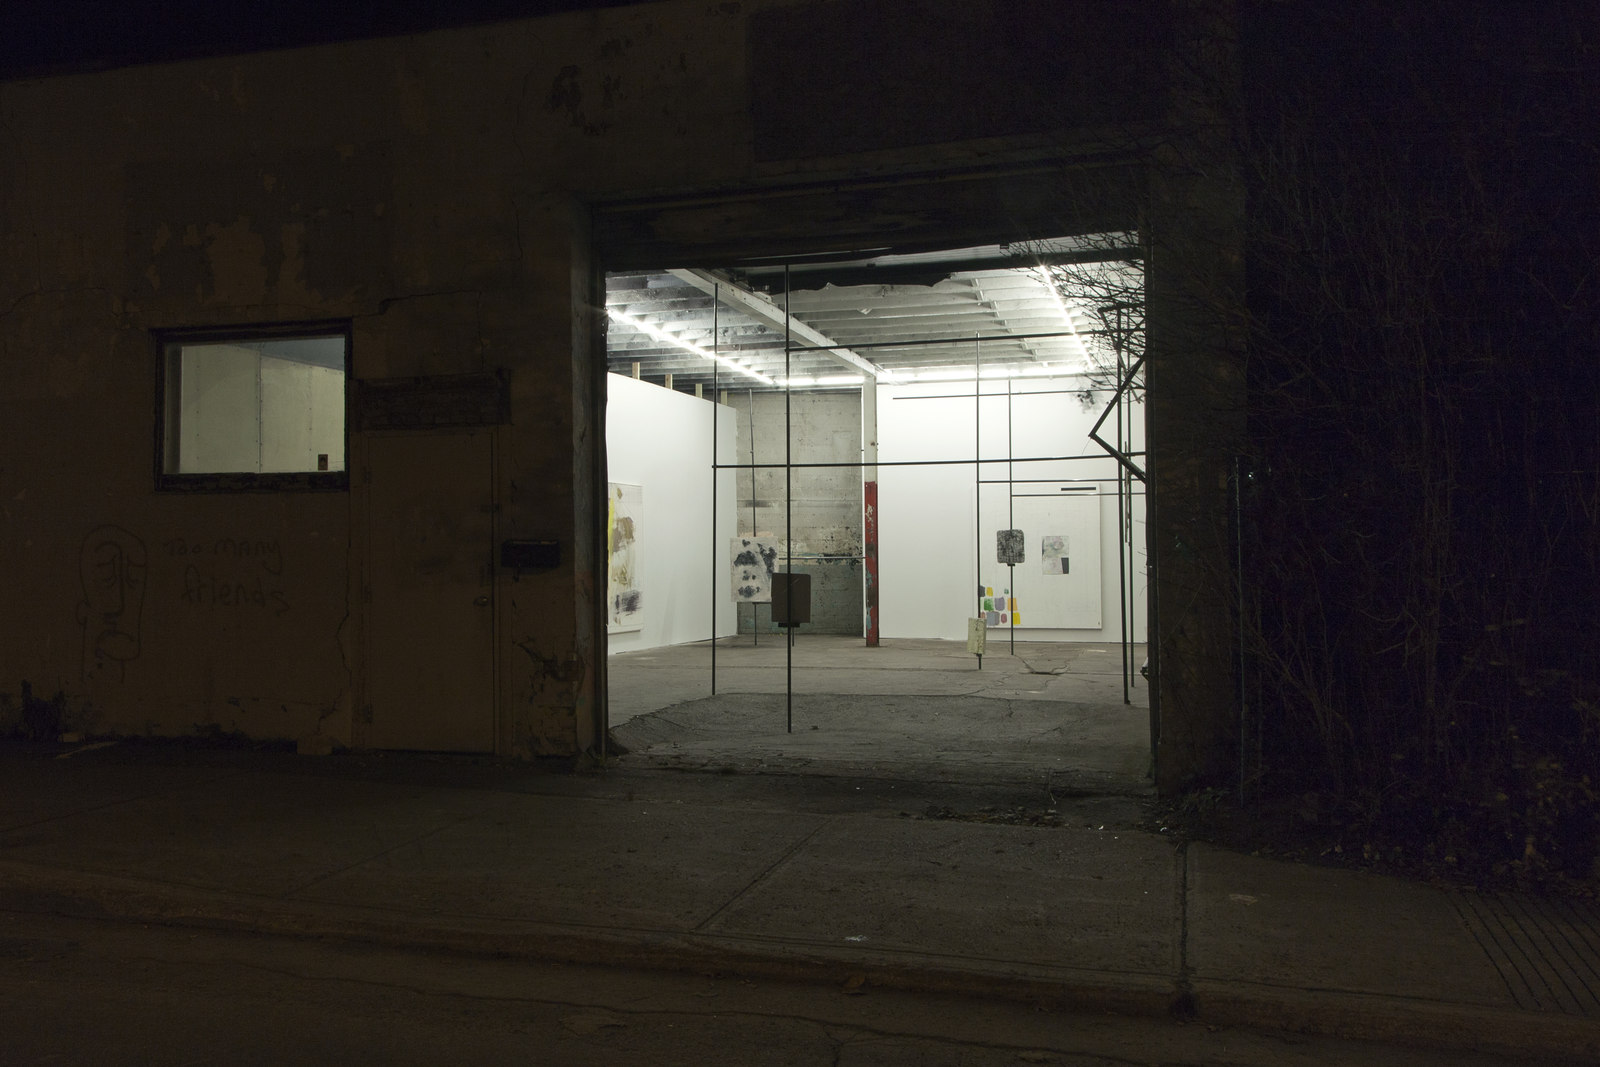 024_Installation View_8